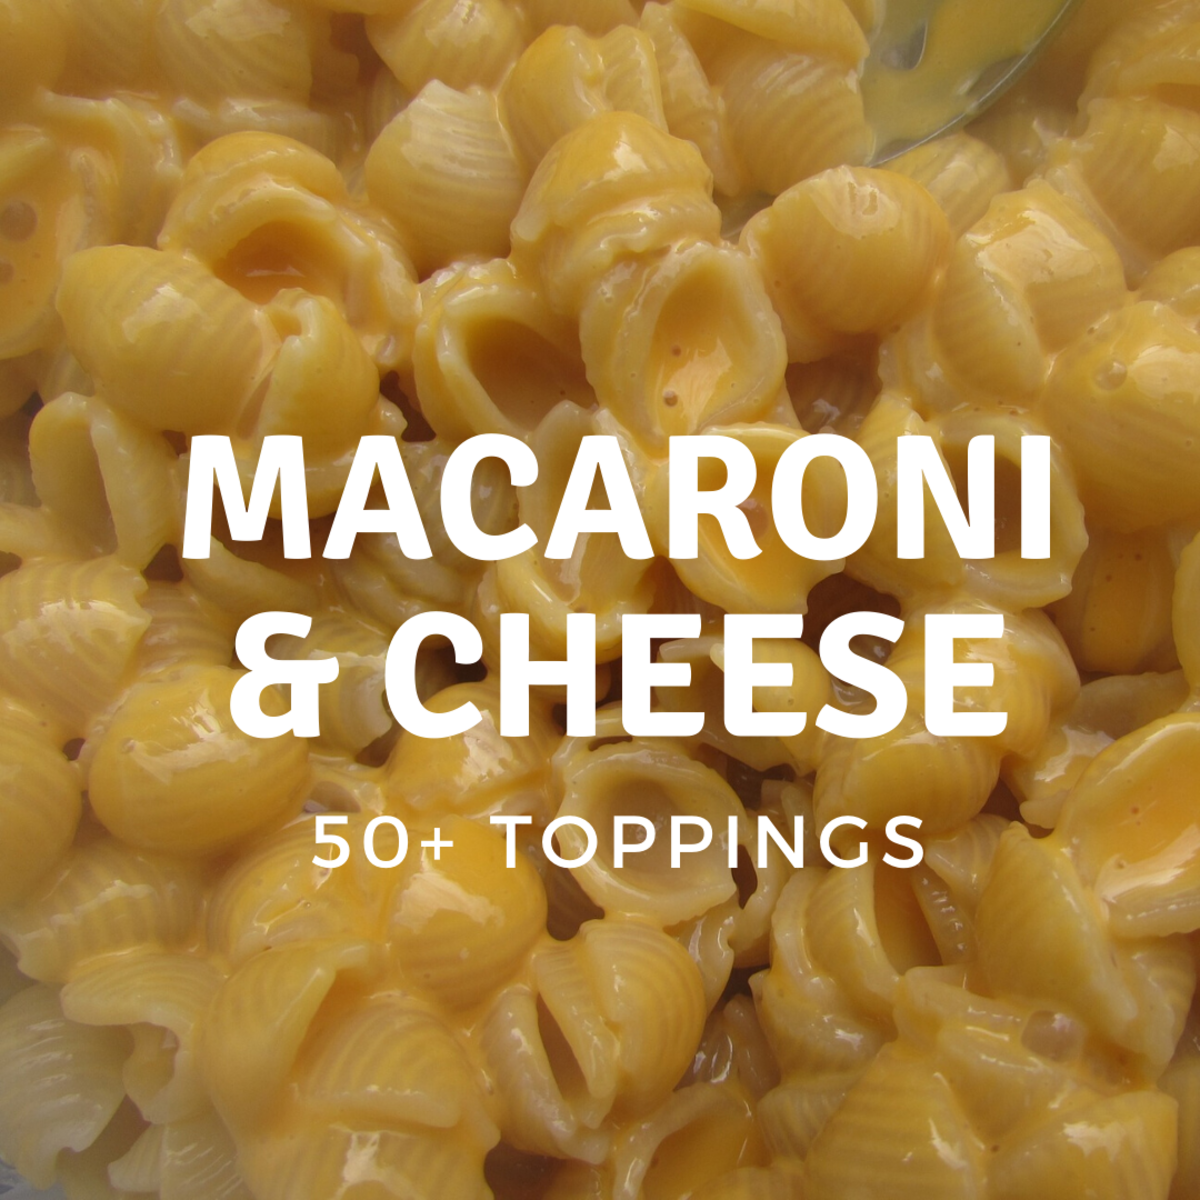 Are you looking for some mac and cheese inspiration?